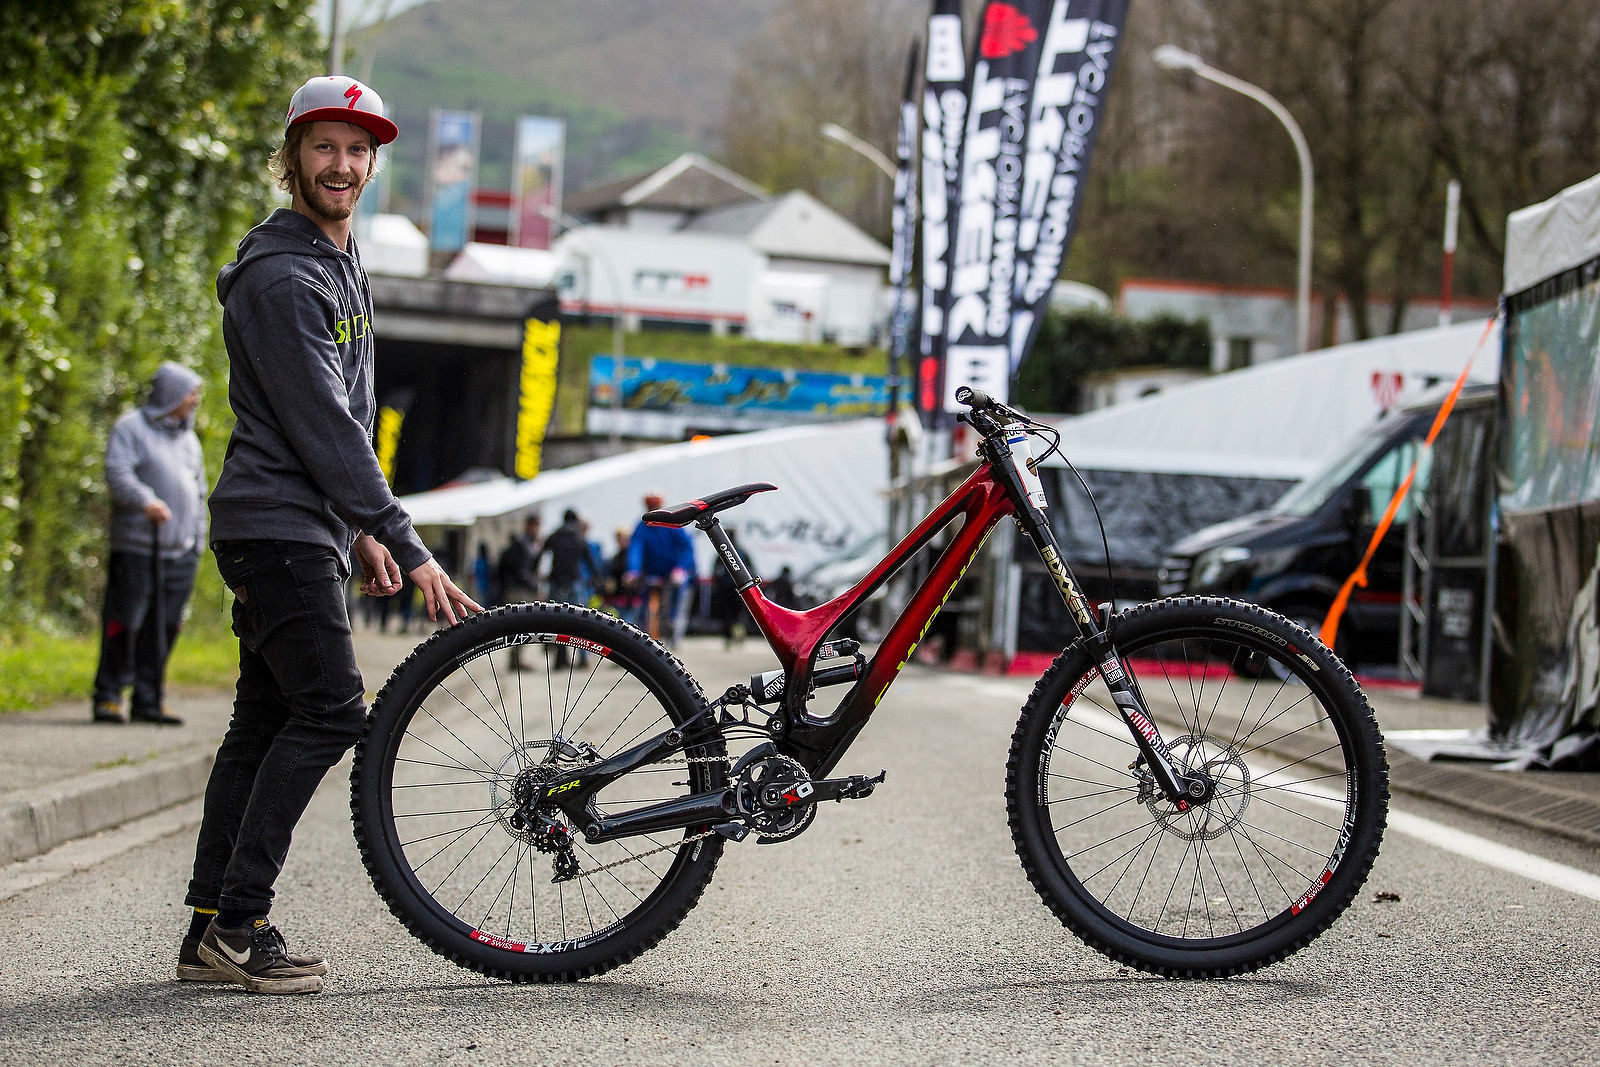 Troy Brosnan's Demo with Mechanic, Aaron - PIT BITS - 2016 Lourdes World Cup Downhill - Mountain Biking Pictures - Vital MTB